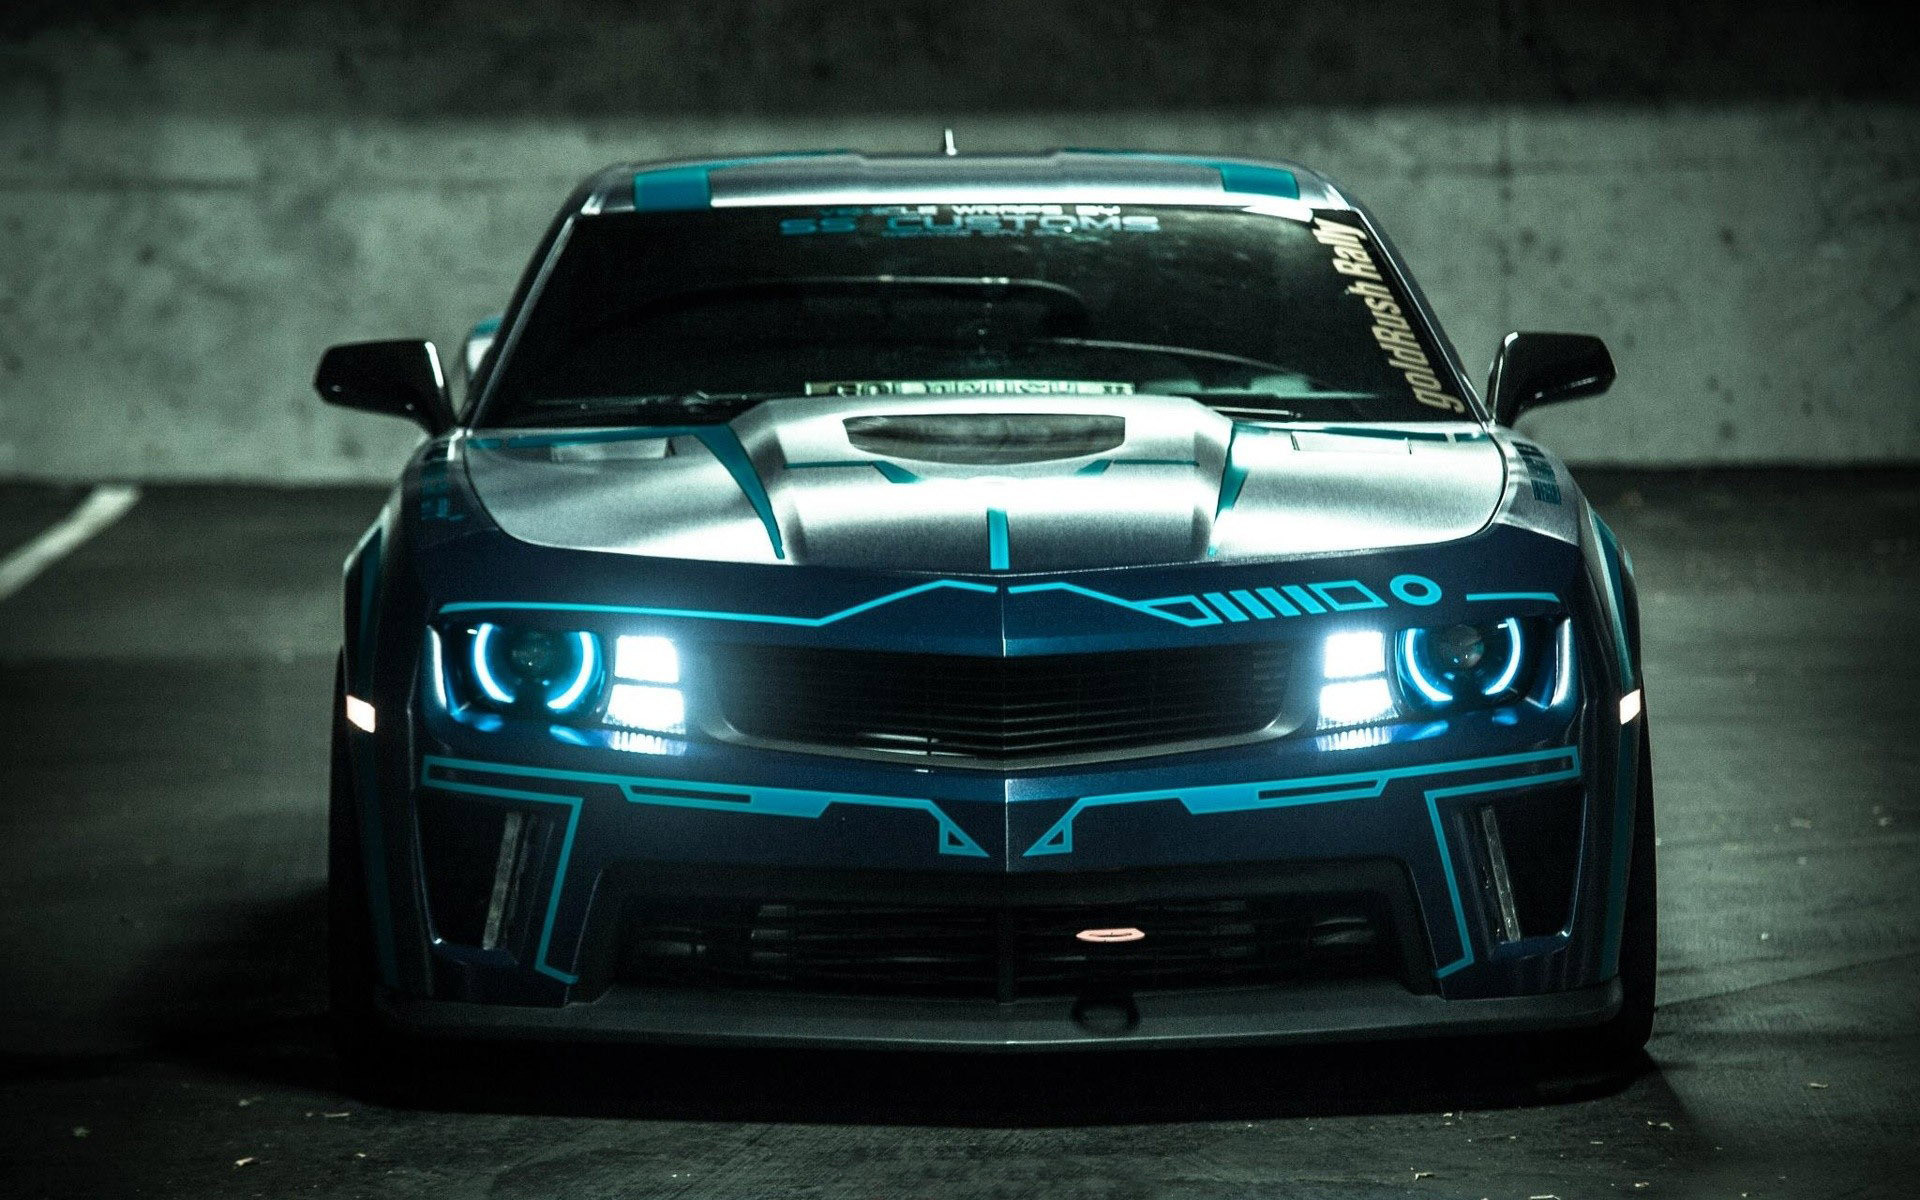 1920x1200 ... Customs TRON Chevrolet Camaro HD Wallpaper